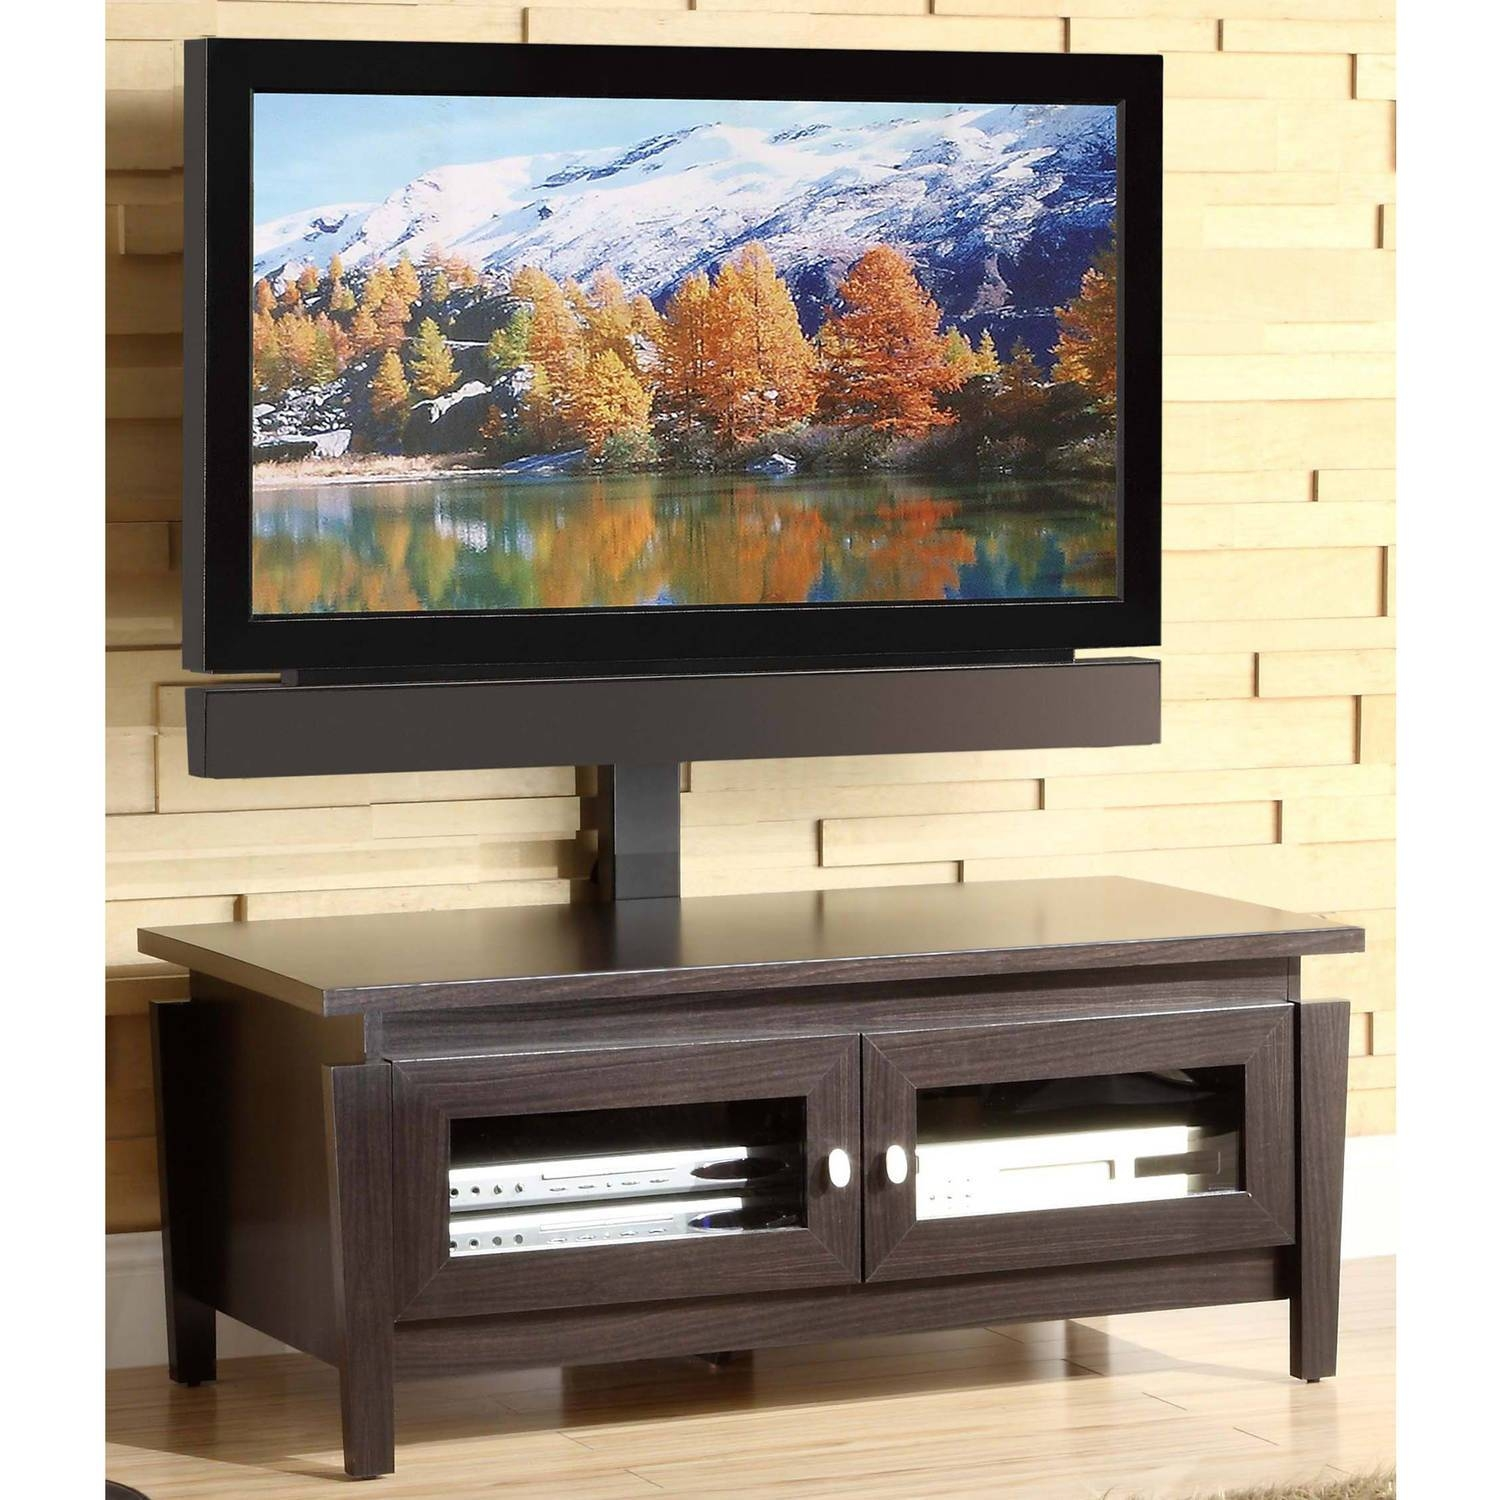 Whalen 3-Tier Cherry Brown Flat Panel Tv Stand For Tvs Up To 50 inside Tv Stands Swivel Mount (Image 13 of 15)